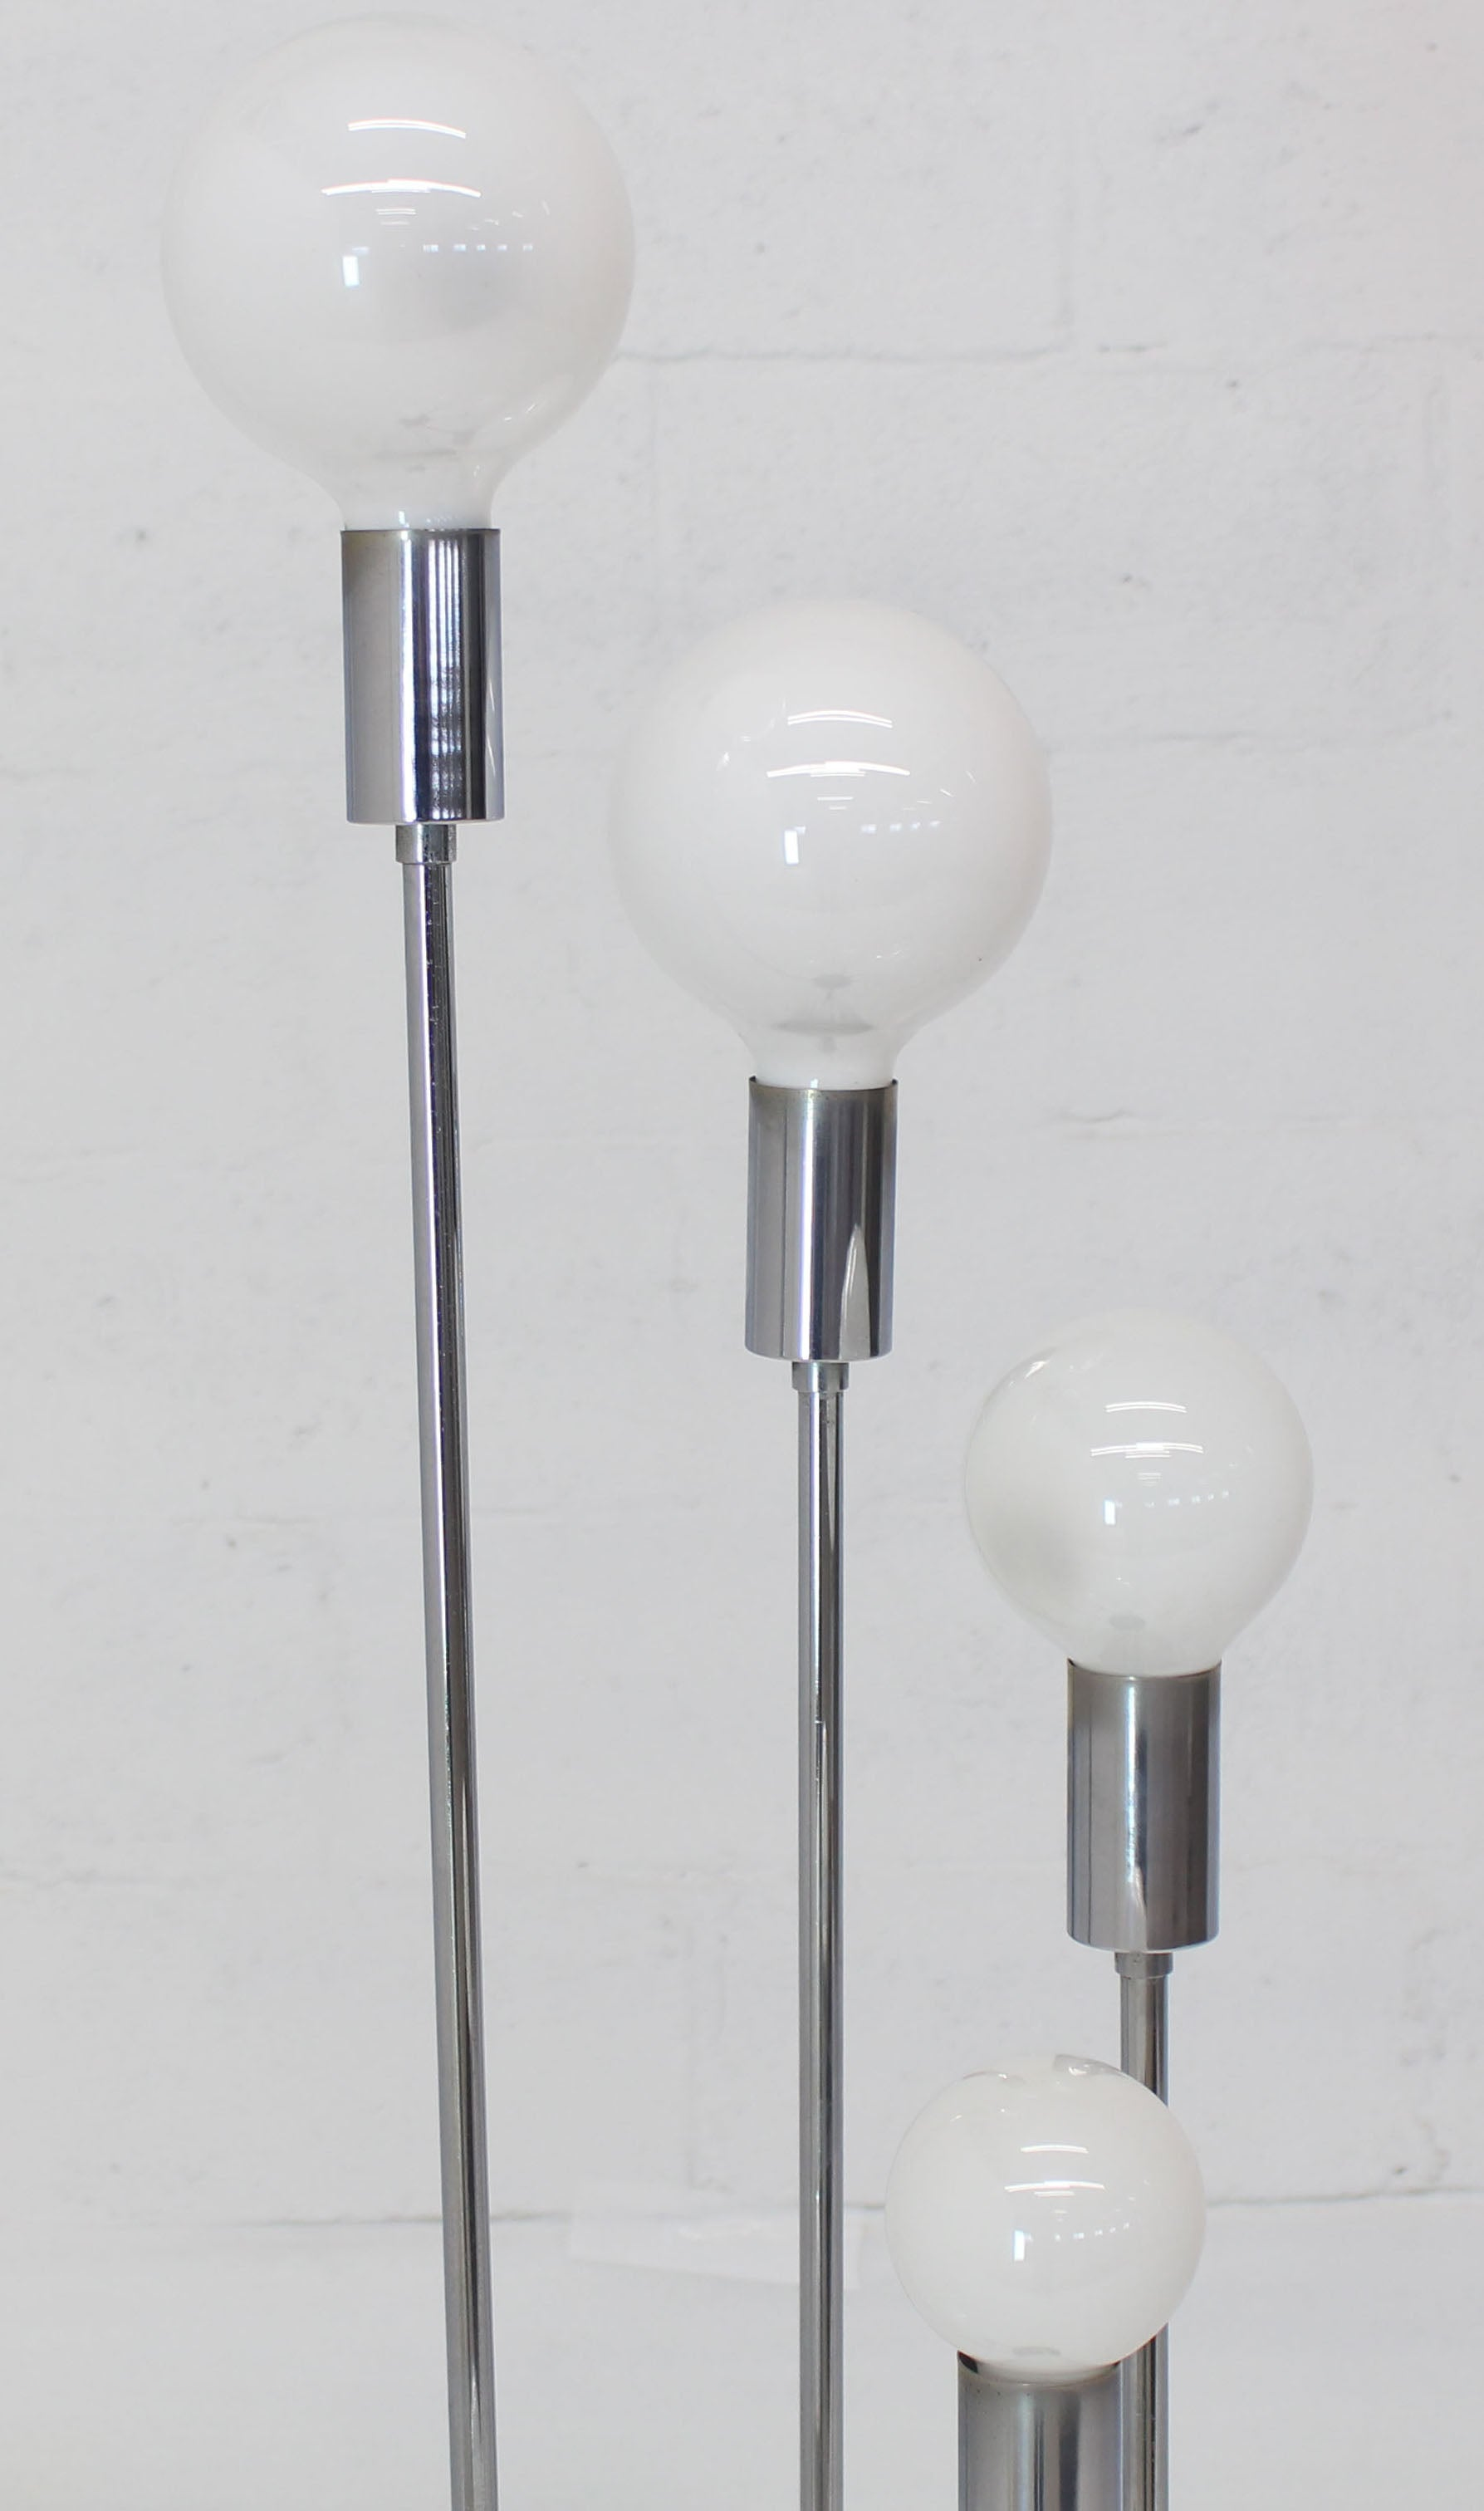 3 Way 5 Globes Spiral Chrome Mid Century Modern Floor Lamps On Round Base At 1stdibs